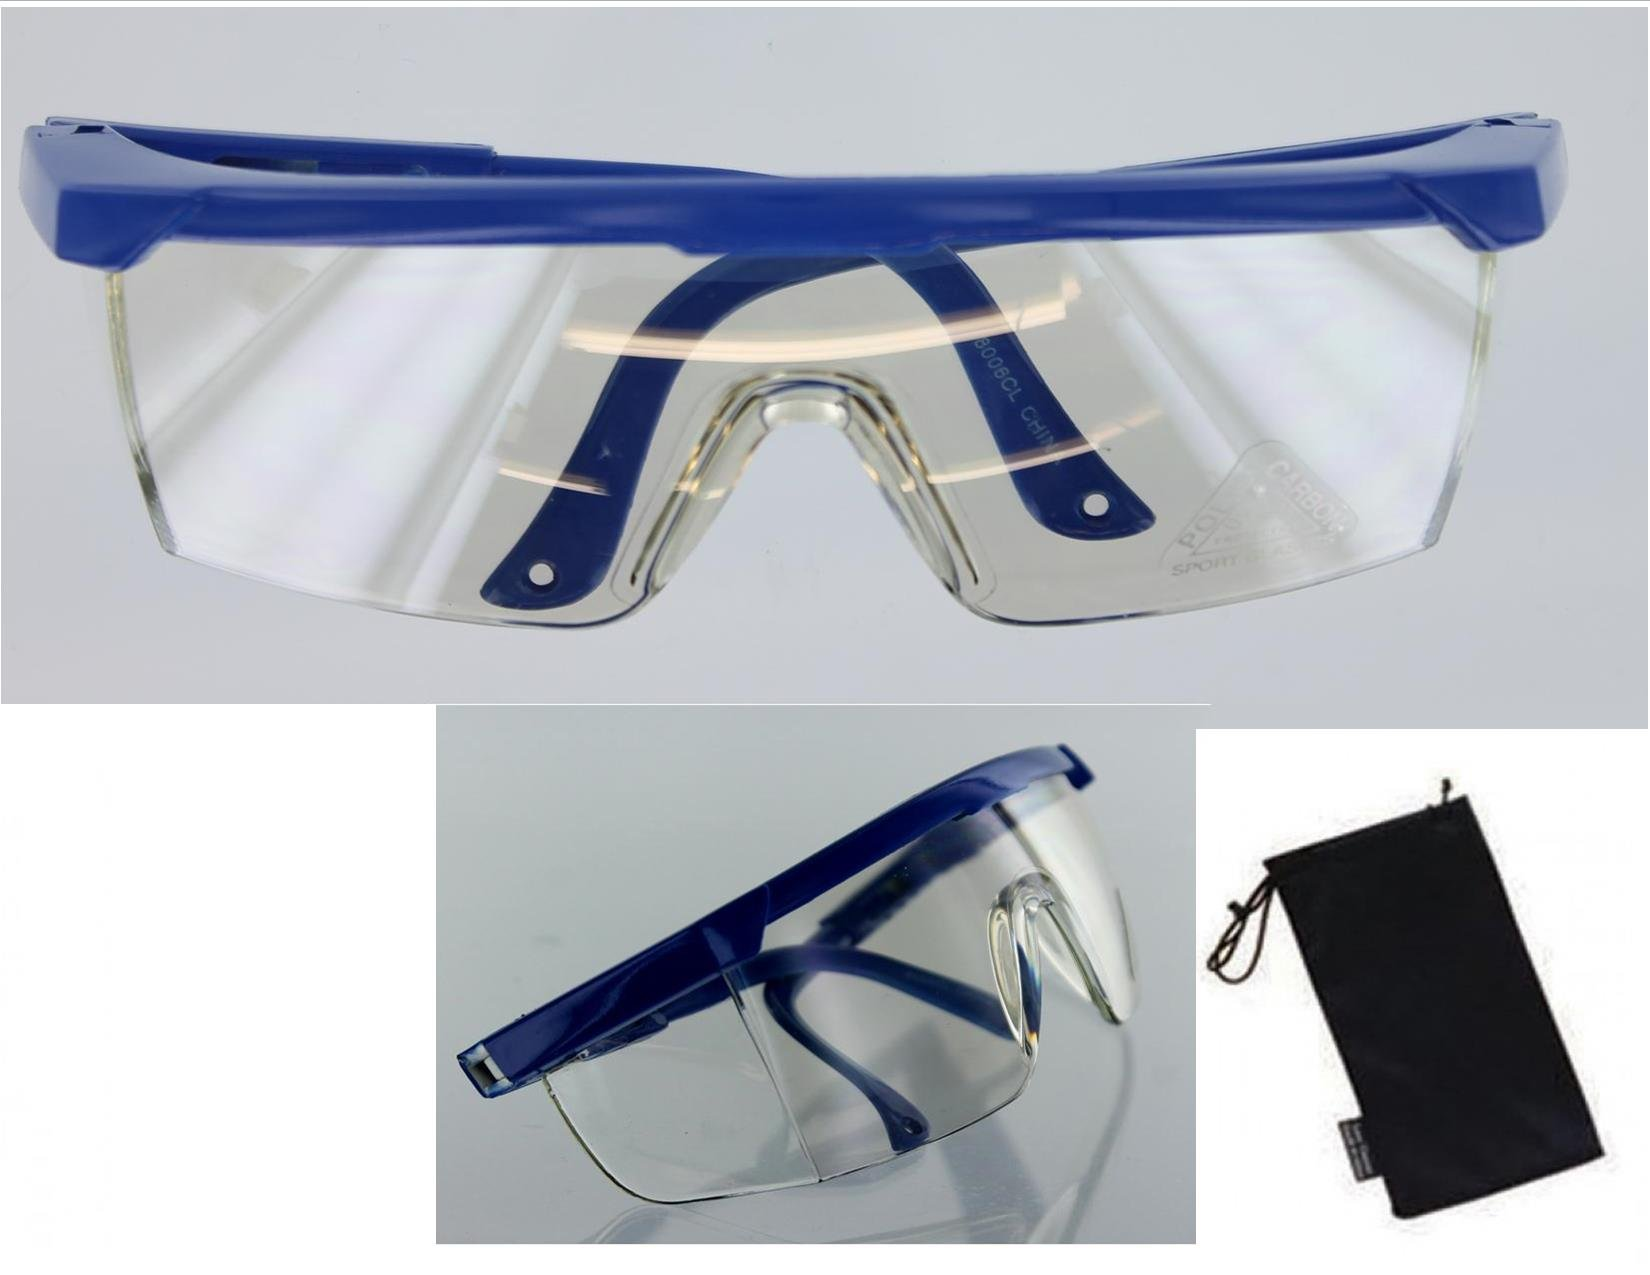 EDOG SHOOTING HUNTING SAFETY GLASSES | BLUE FRAME | CLEAR PLASTIC LENS | SOFT FABRIC GLASS CASE INCLUDED | WILL SLIP OVER EXISTING GLASSES IN MANY CASES